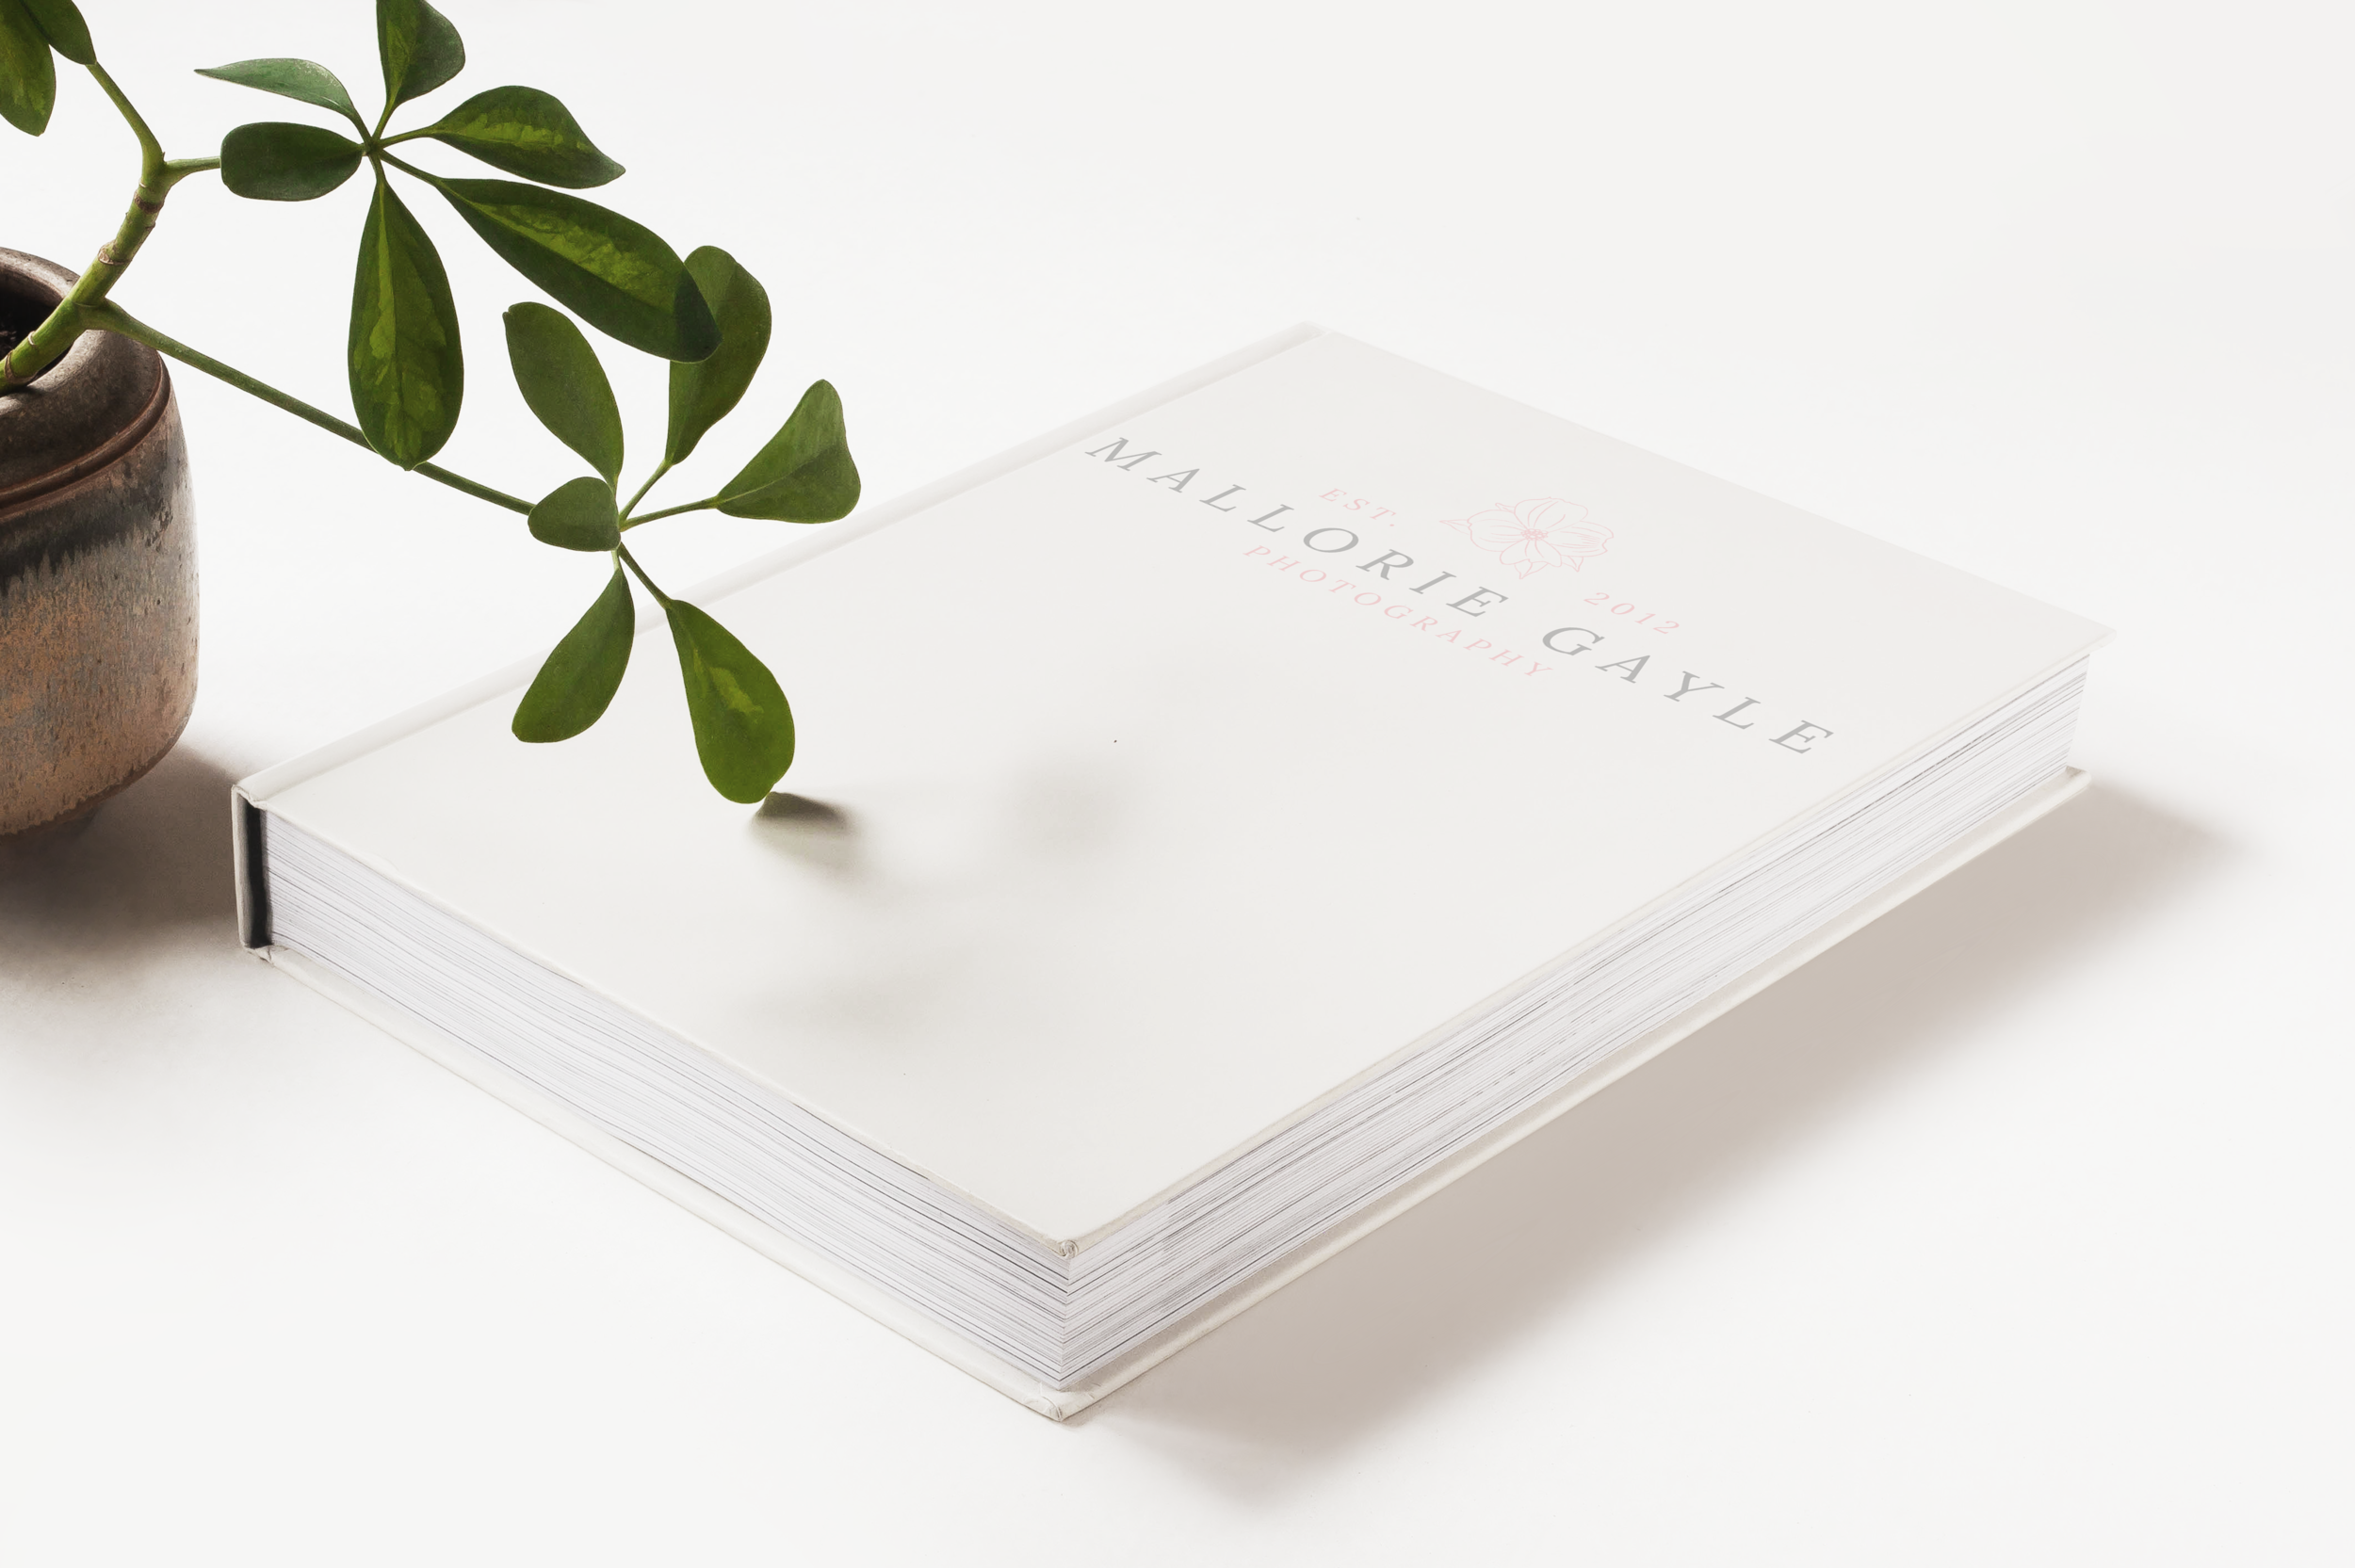 Mallorie Gayle Photography Photo Book Mockup